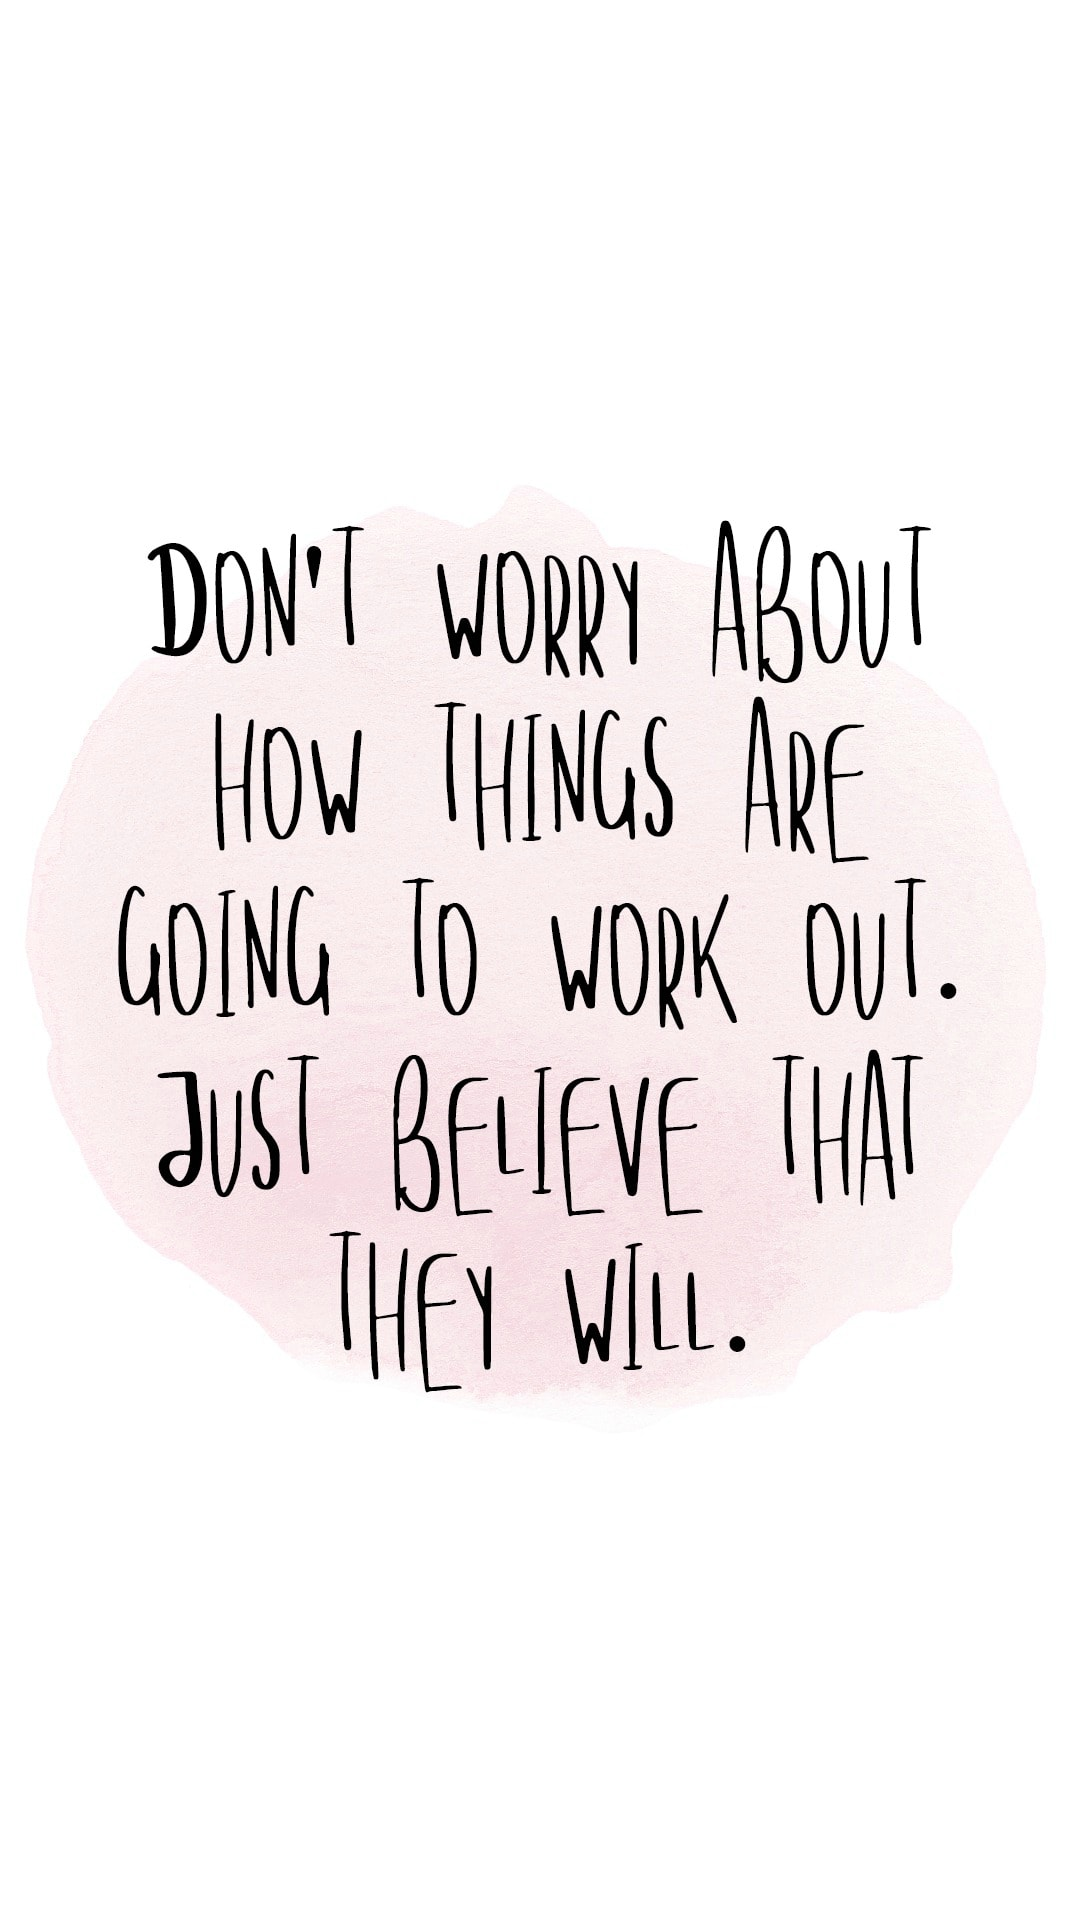 Don't worry about how things are going to work out. Just believe that they will.